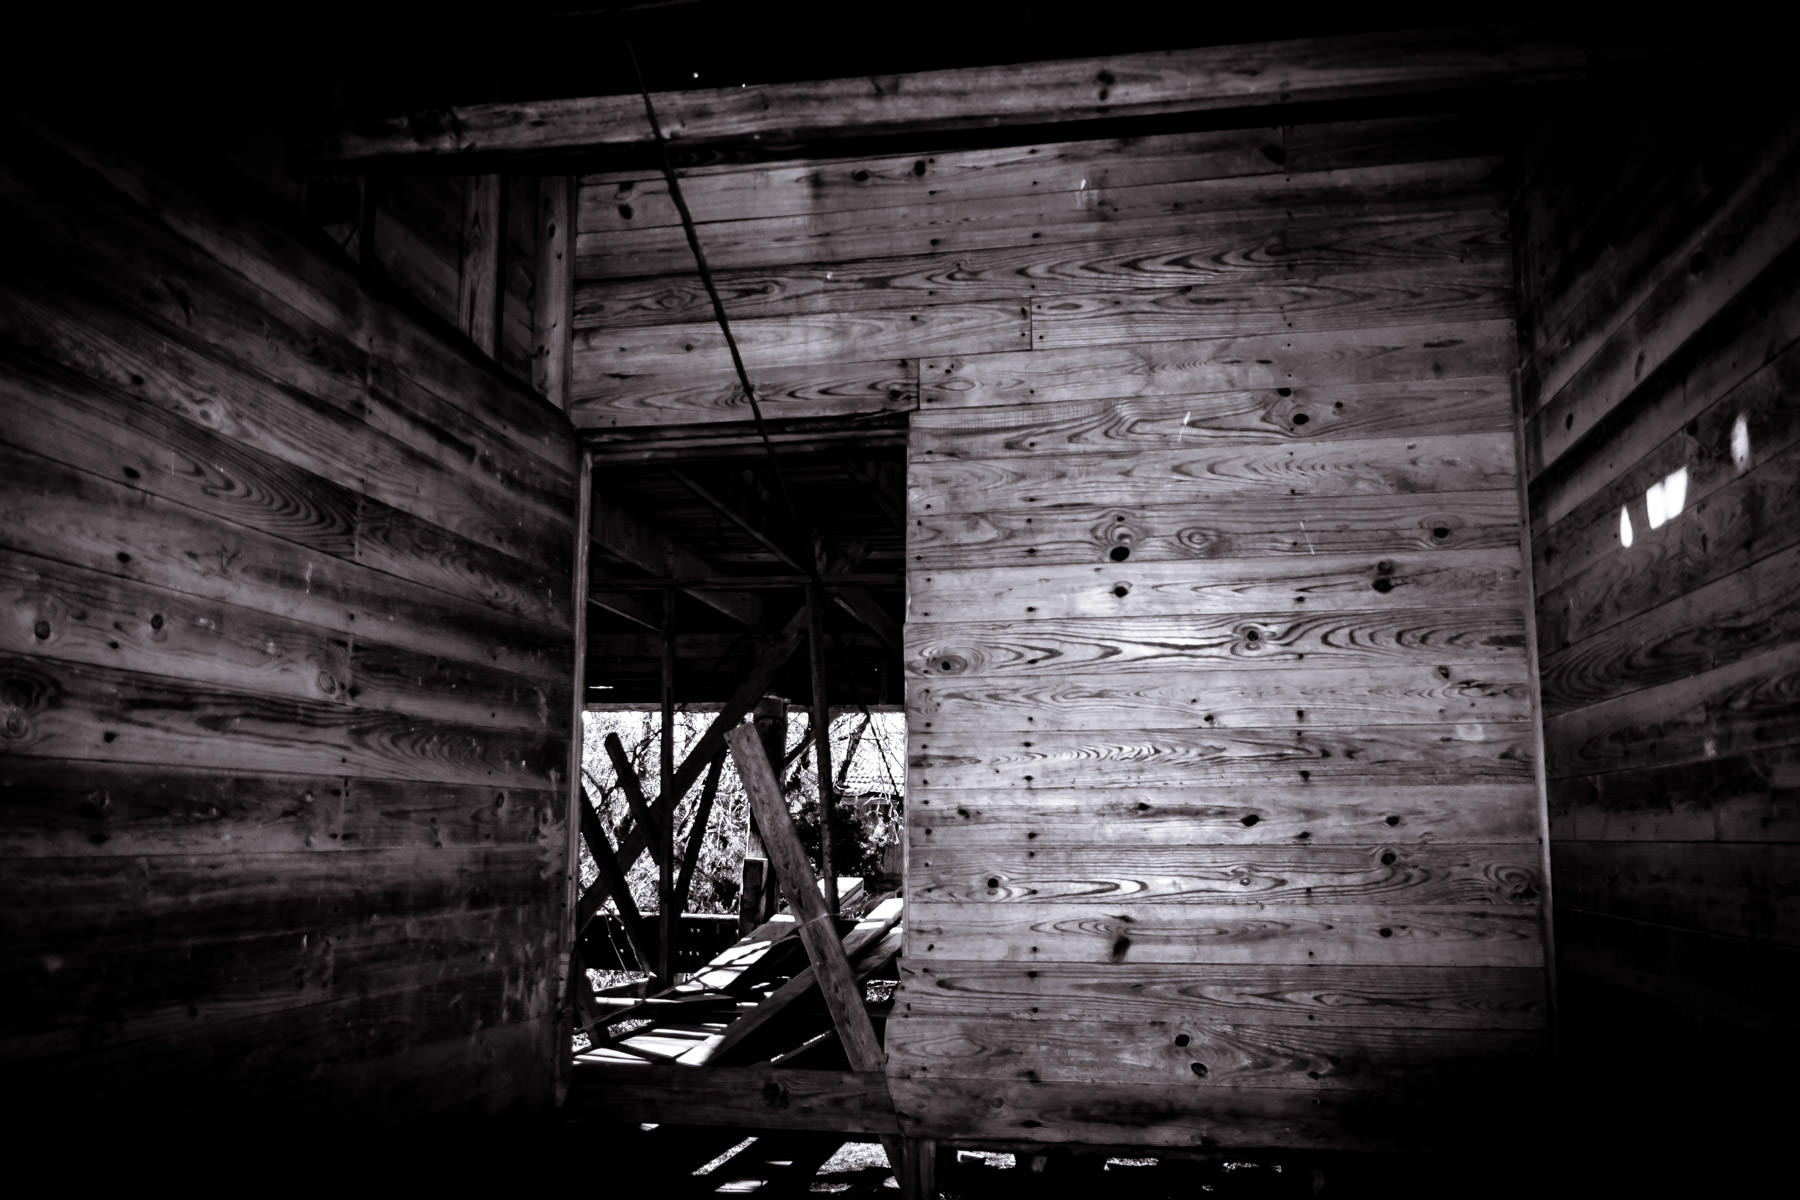 The interior of an abandoned barn found near Allen, Texas.